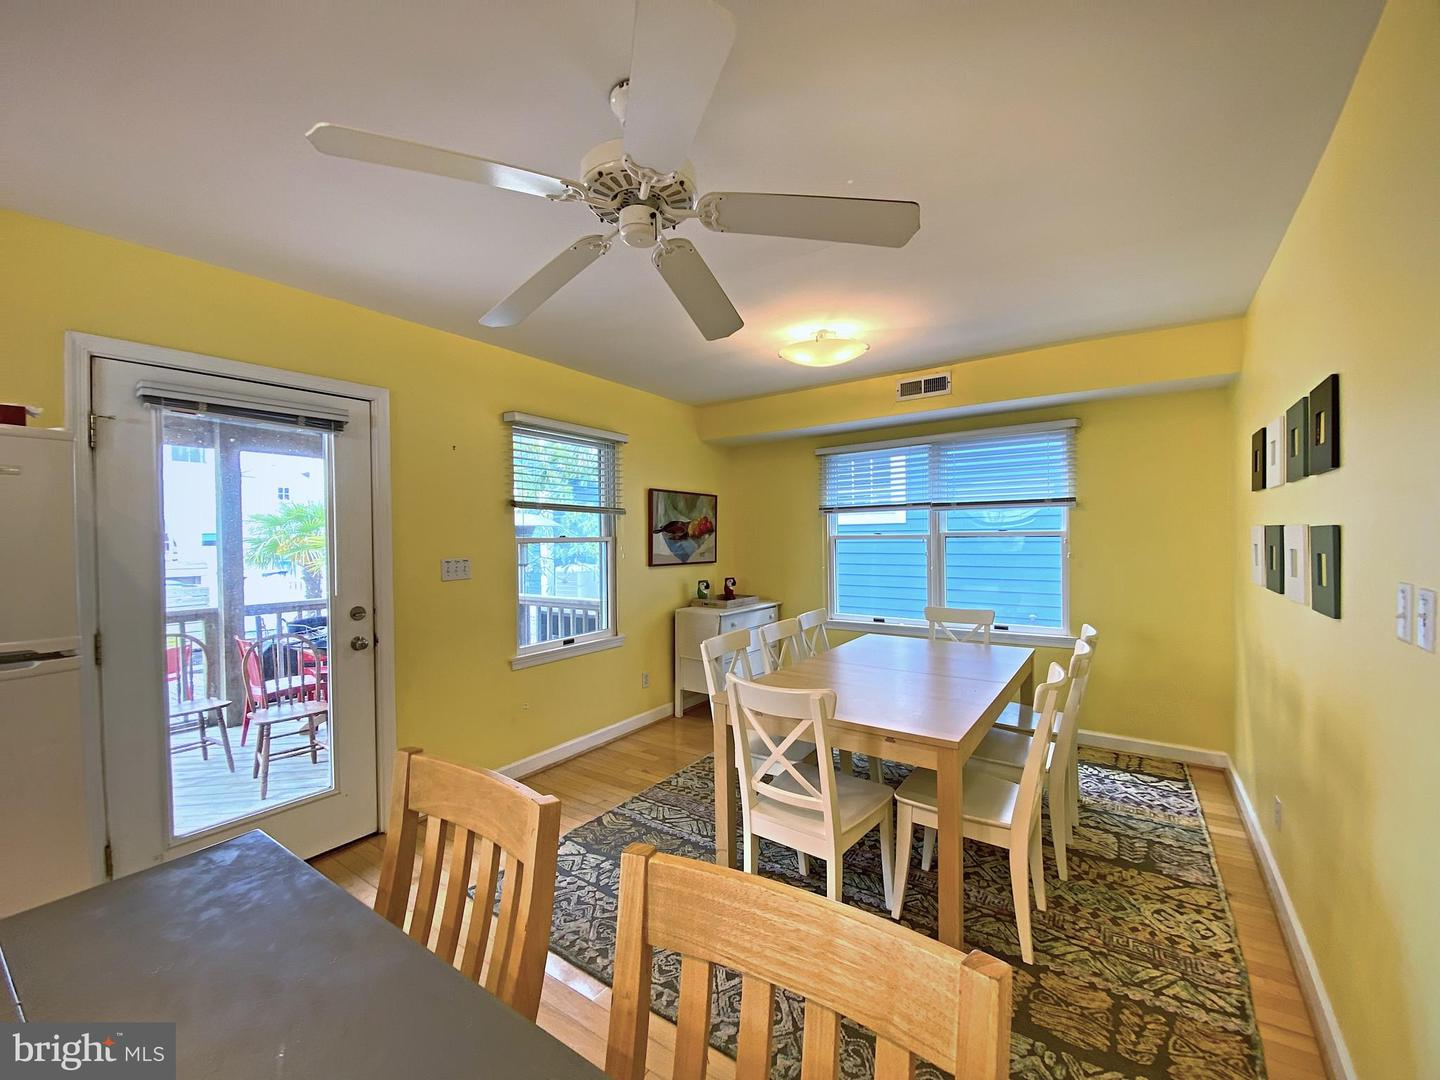 DESU161746-304145716697-2020-05-30-11-15-25 116 Hollywood St | Bethany Beach, DE Real Estate For Sale | MLS# Desu161746  - Ocean Atlantic